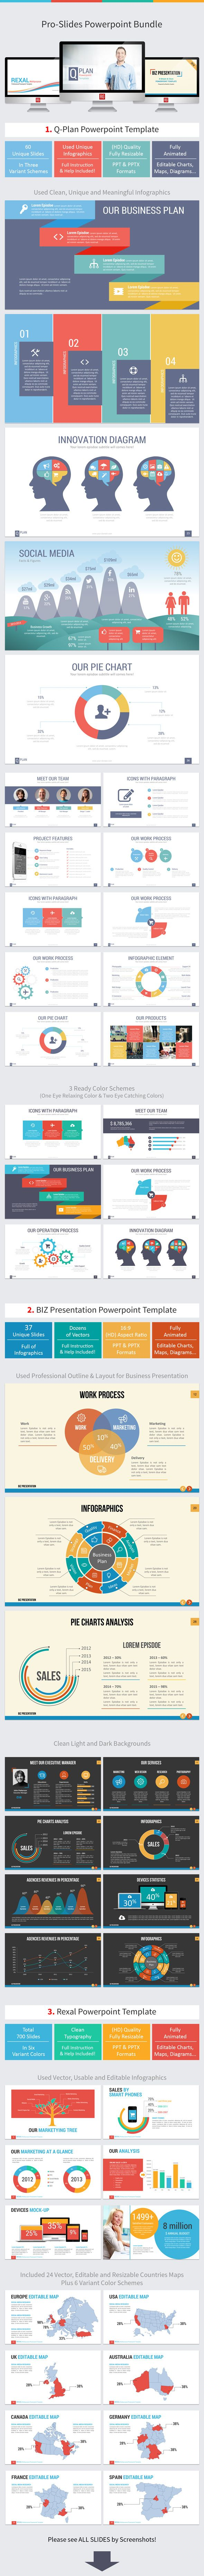 Pro-Slides Powerpoint Bundle (PowerPoint Templates) Main Live Preview #Powerpoint #Powerpoint_Template #Presentation